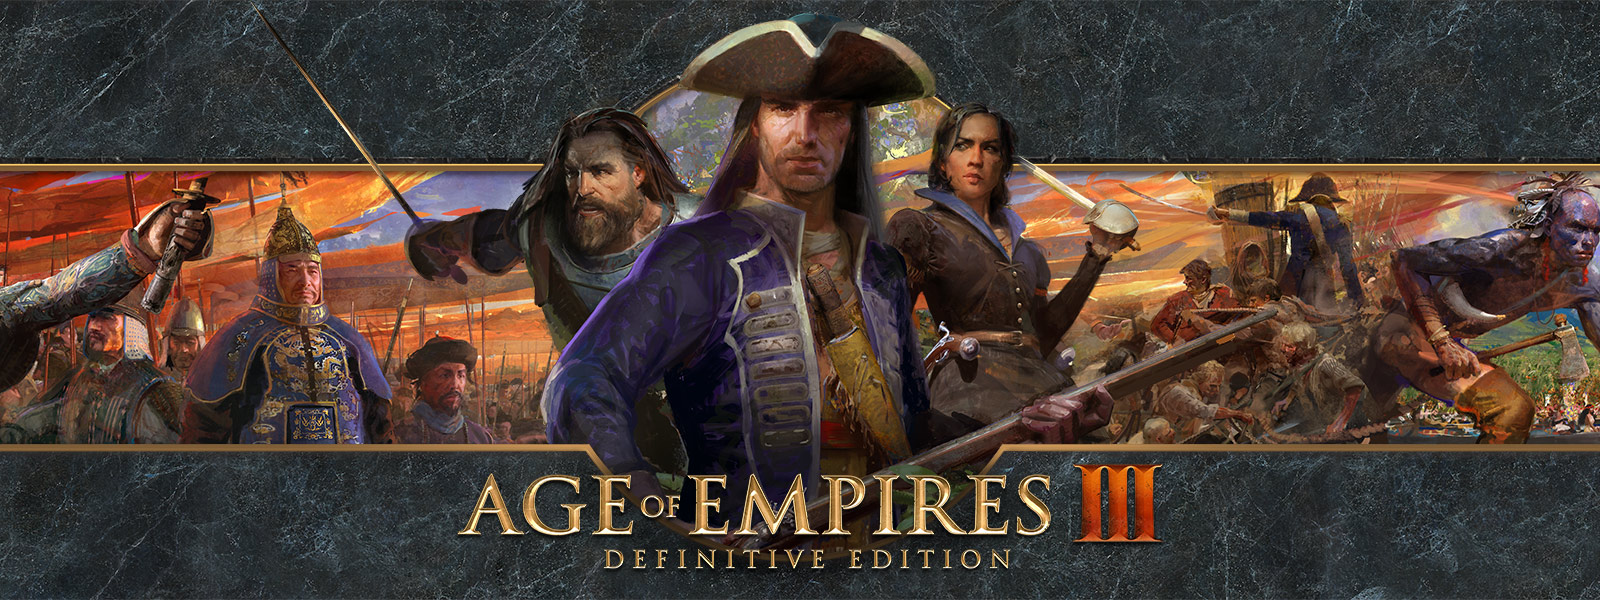 Age of Empires III: Definitive Edition logo on a background featuring war leaders and their armies